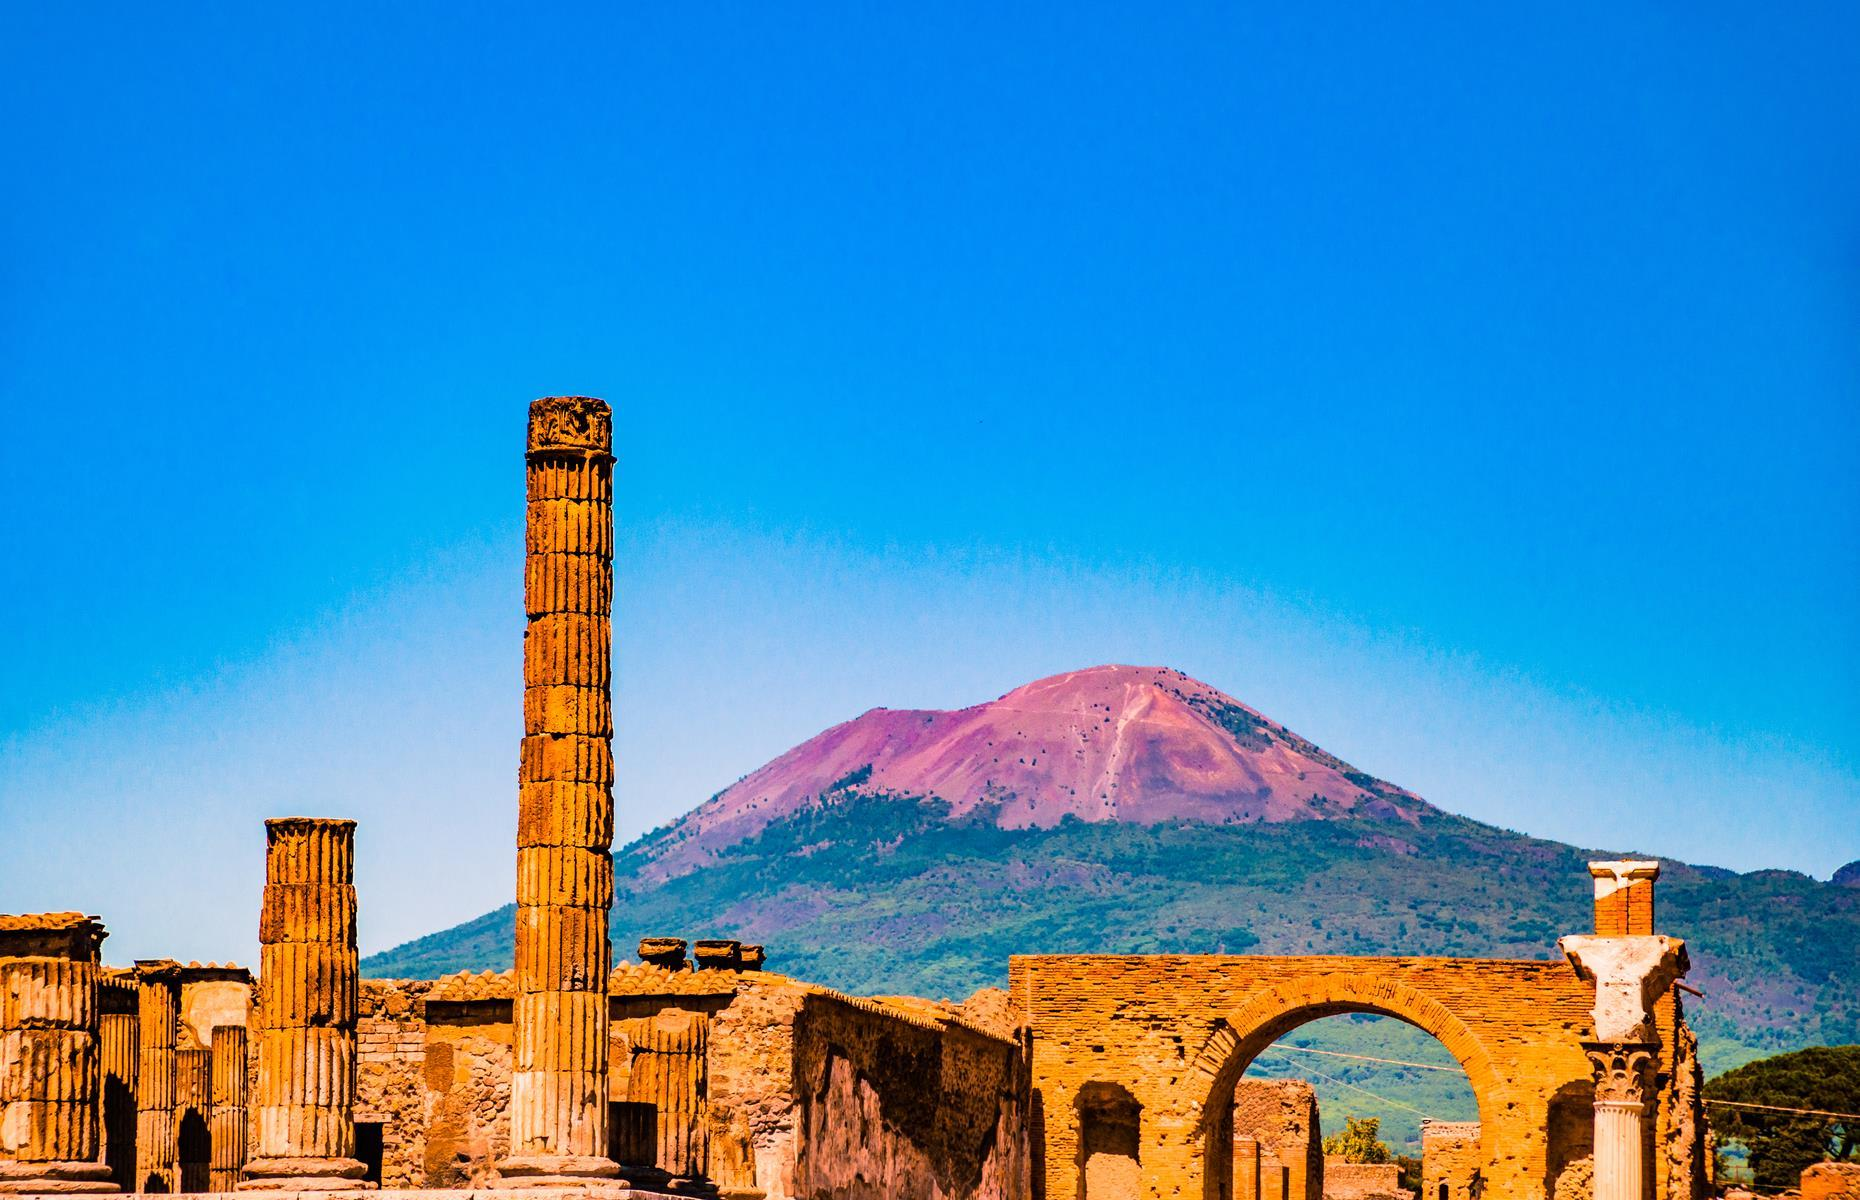 Slide 32 of 64: This Roman city in southern Italy was famously destroyed and buried beneath ash in AD 79 when Mount Vesuvius erupted spectacularly on 24 August. Around 2,000 people perished within the city and it remained buried under tons of ash, rock and pumice until its sprawling ruins were rediscovered in 1748. It's Europe's richest archaeological site.